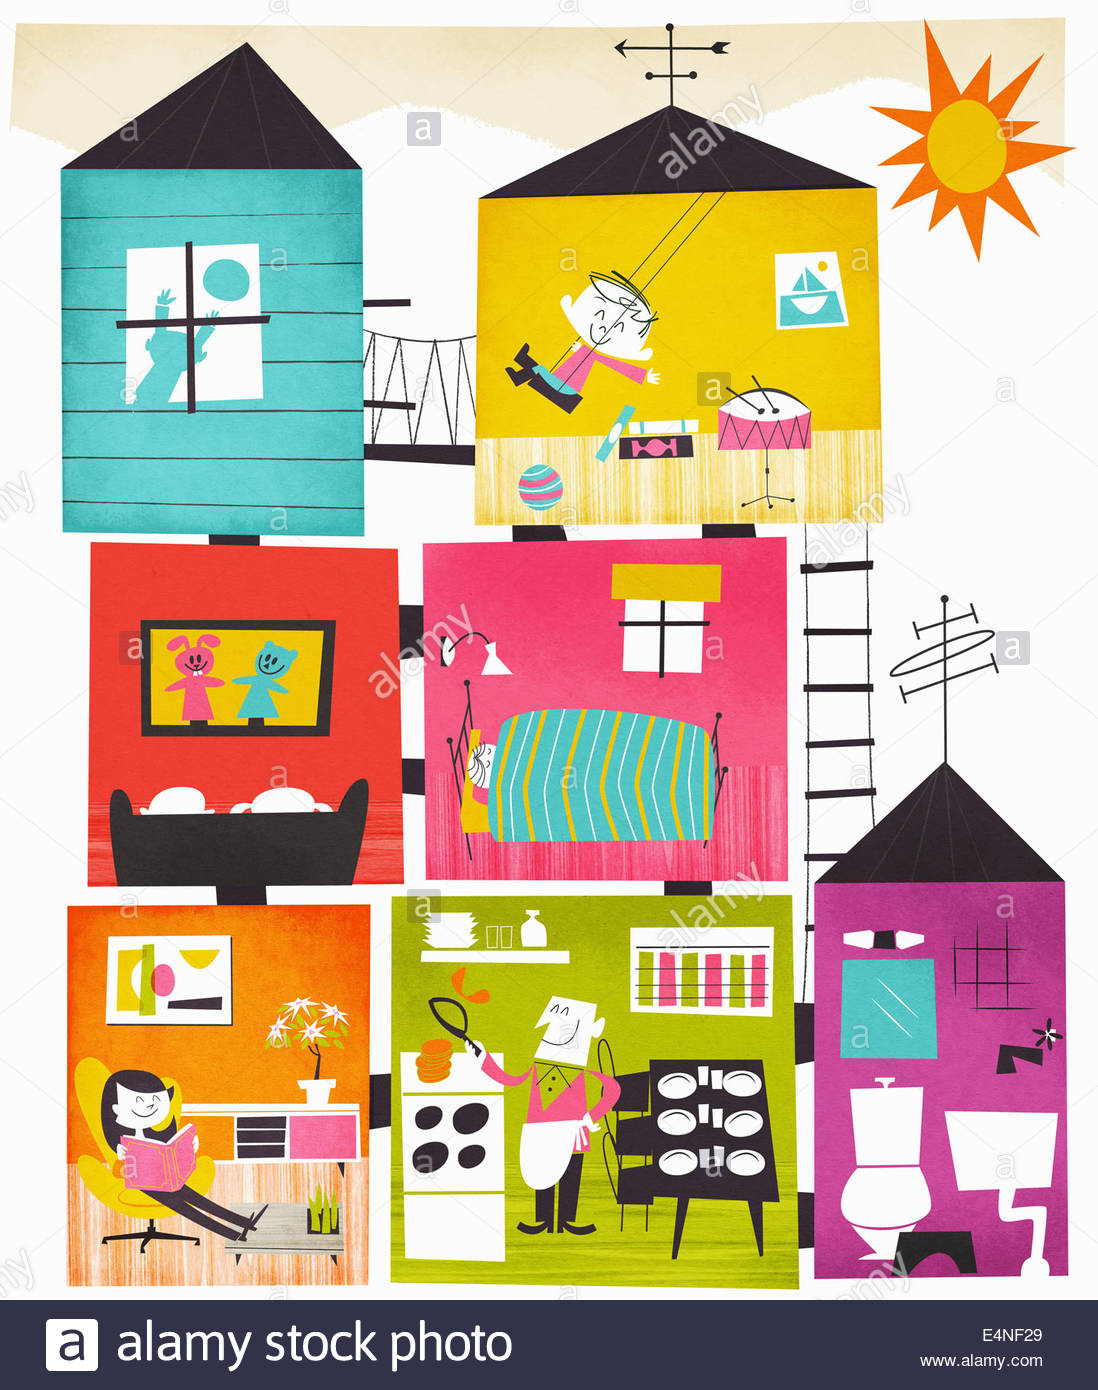 Family enjoying leisure activities at home in cross section of rooms of house - Stock Image